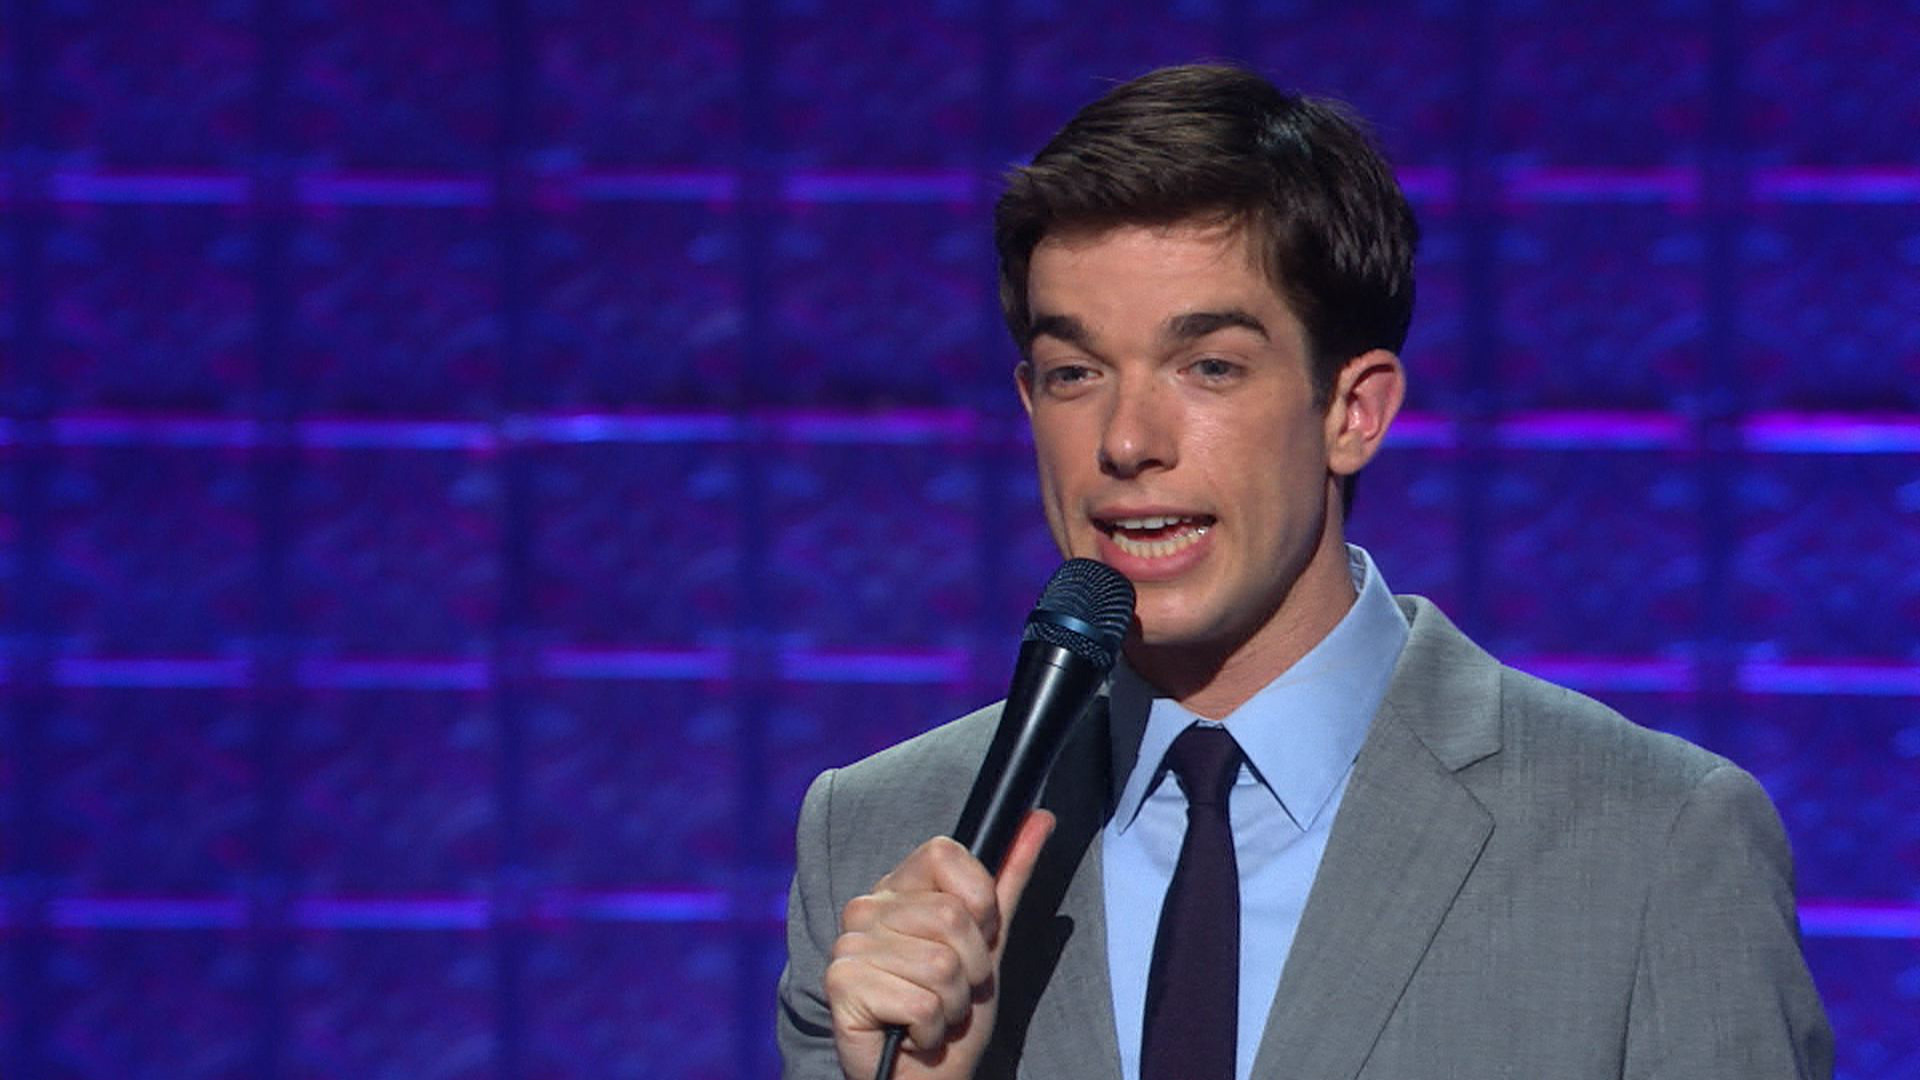 John Mulaney - Salad or Fries